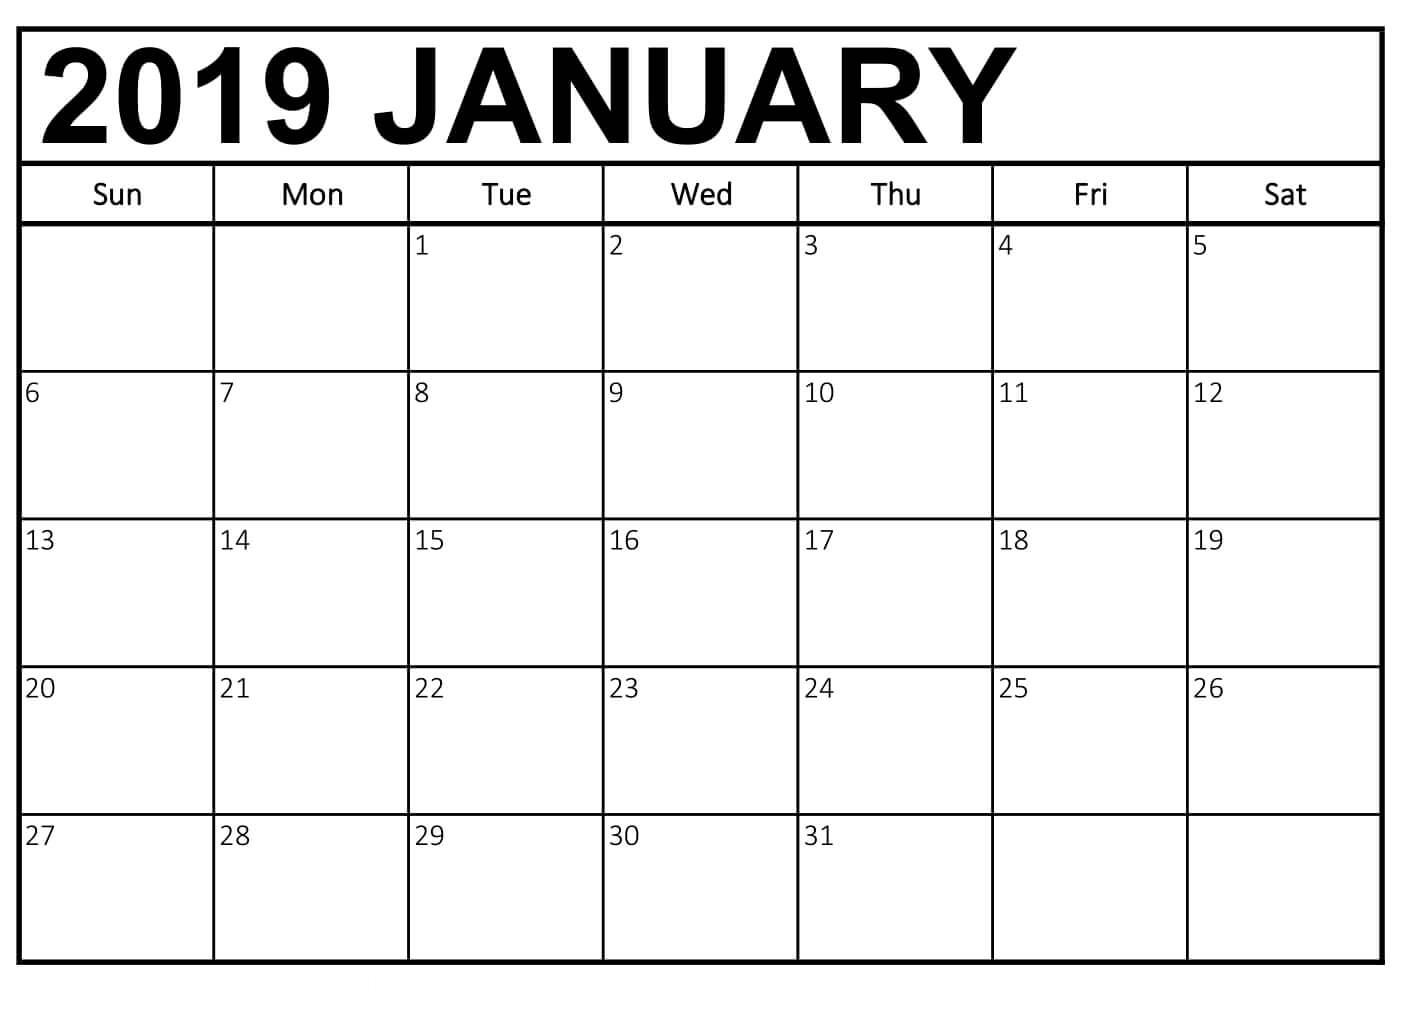 January 2019 Calendar Printable Business Template